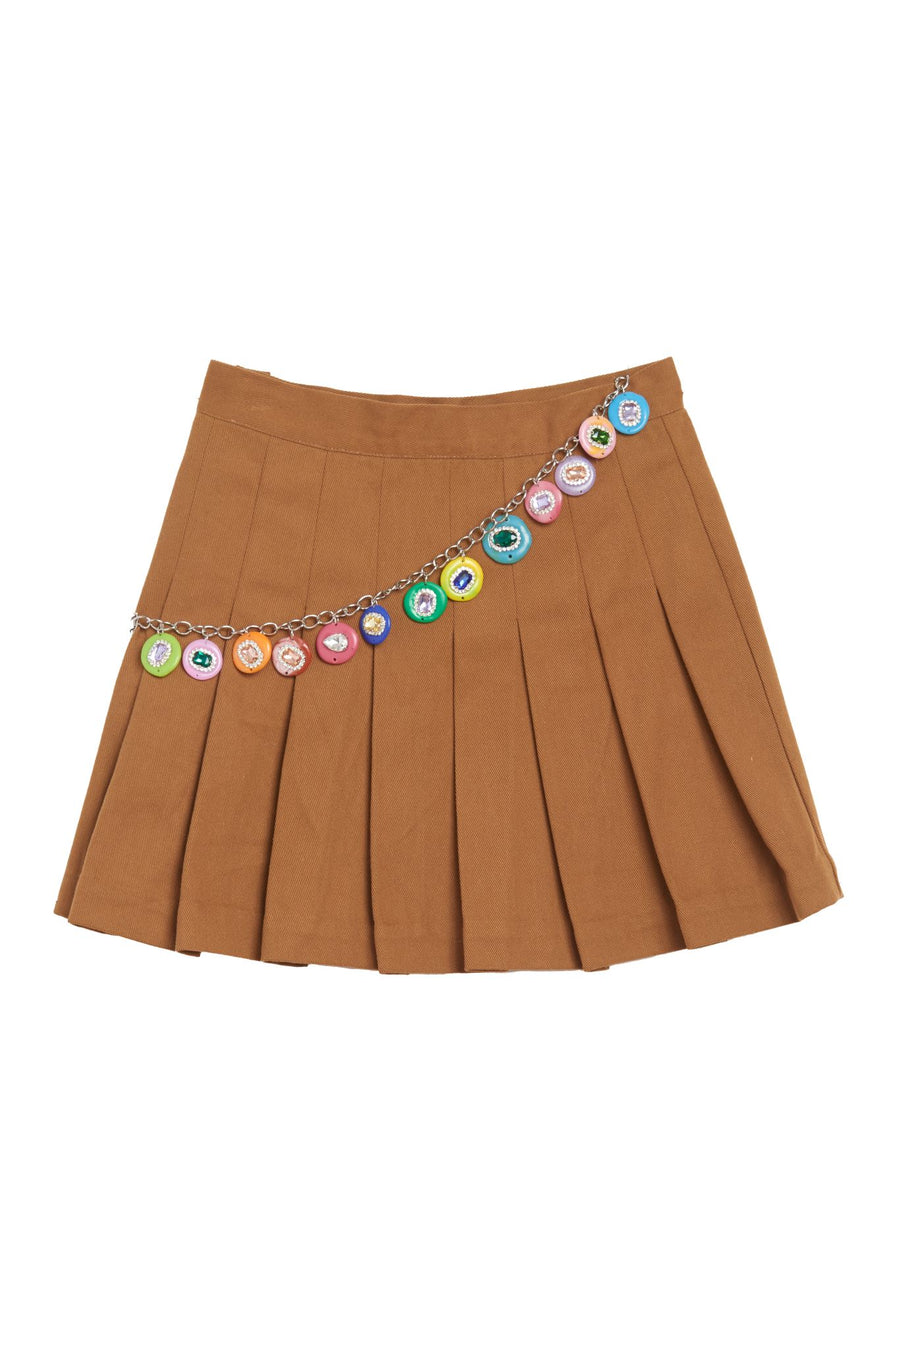 Crystal Tennis Skirt